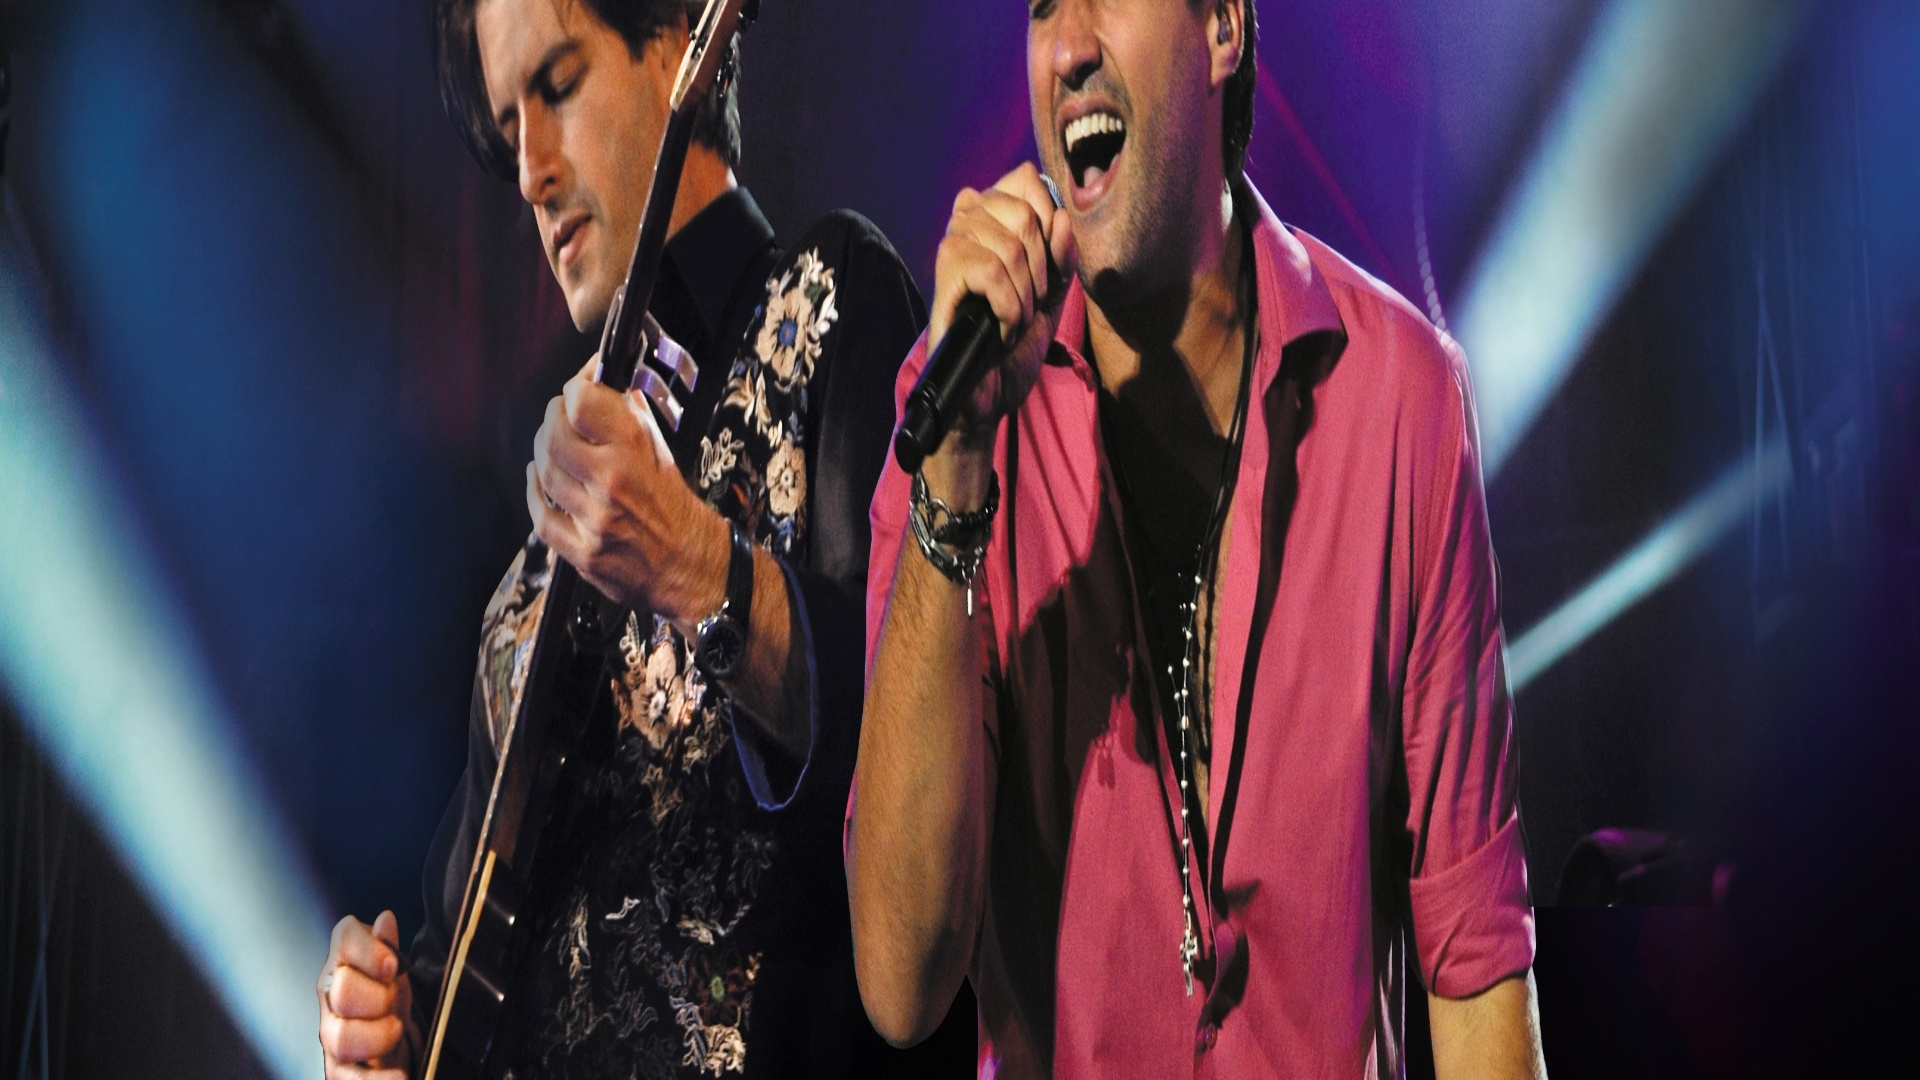 Victor e Leo fazem shows de 13 a 16 de dezembro em So Paulo